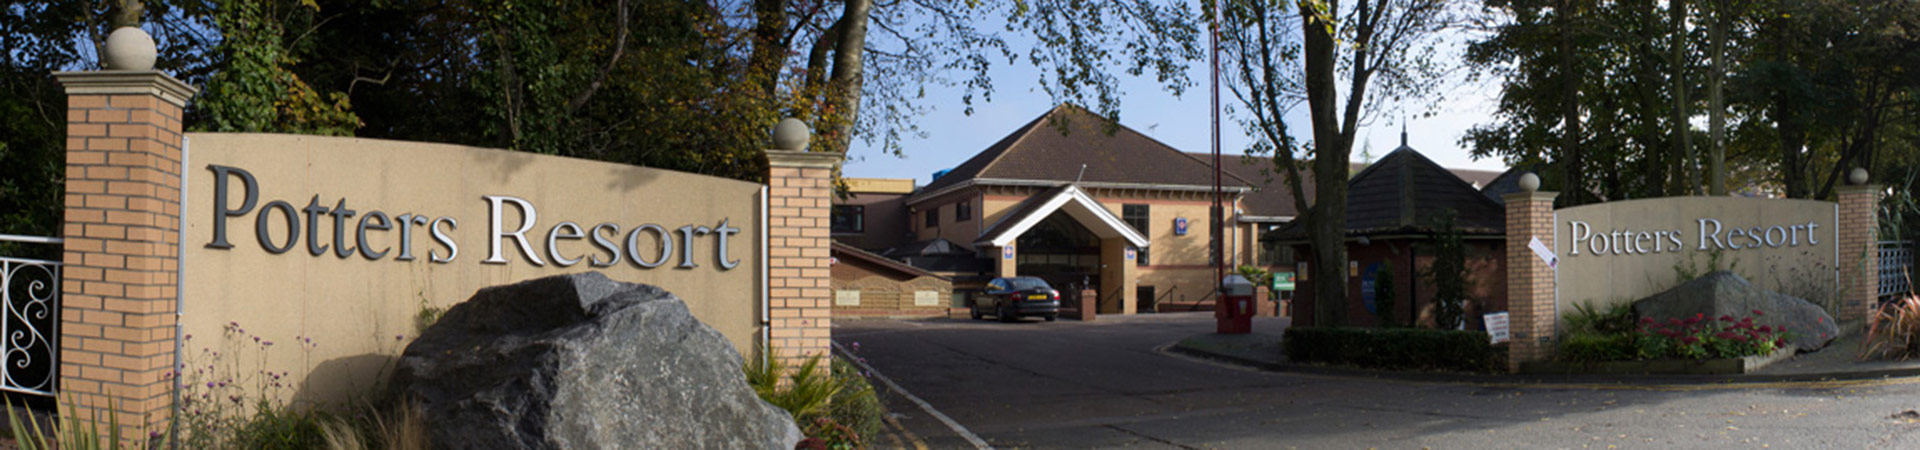 Potters Leisure Resort, Great Yarmouth